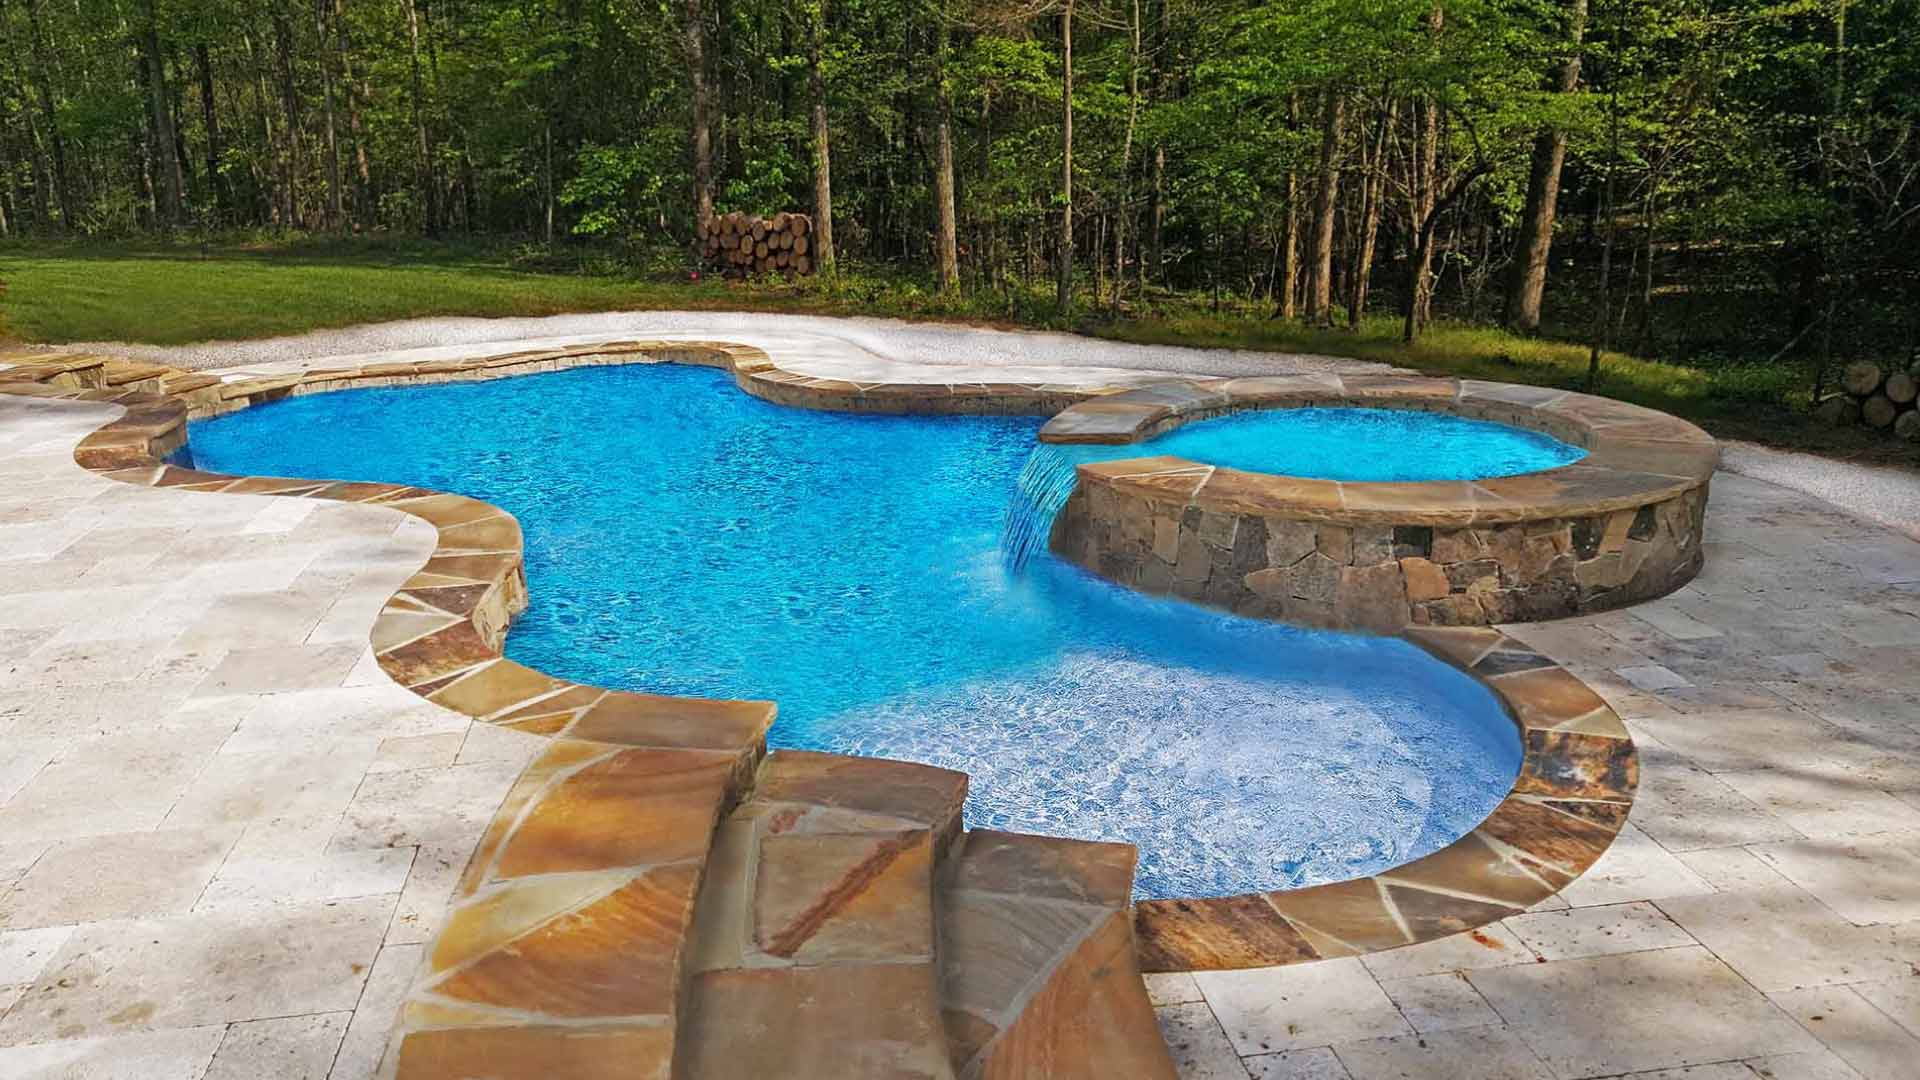 How the right choice of materials improves pool design